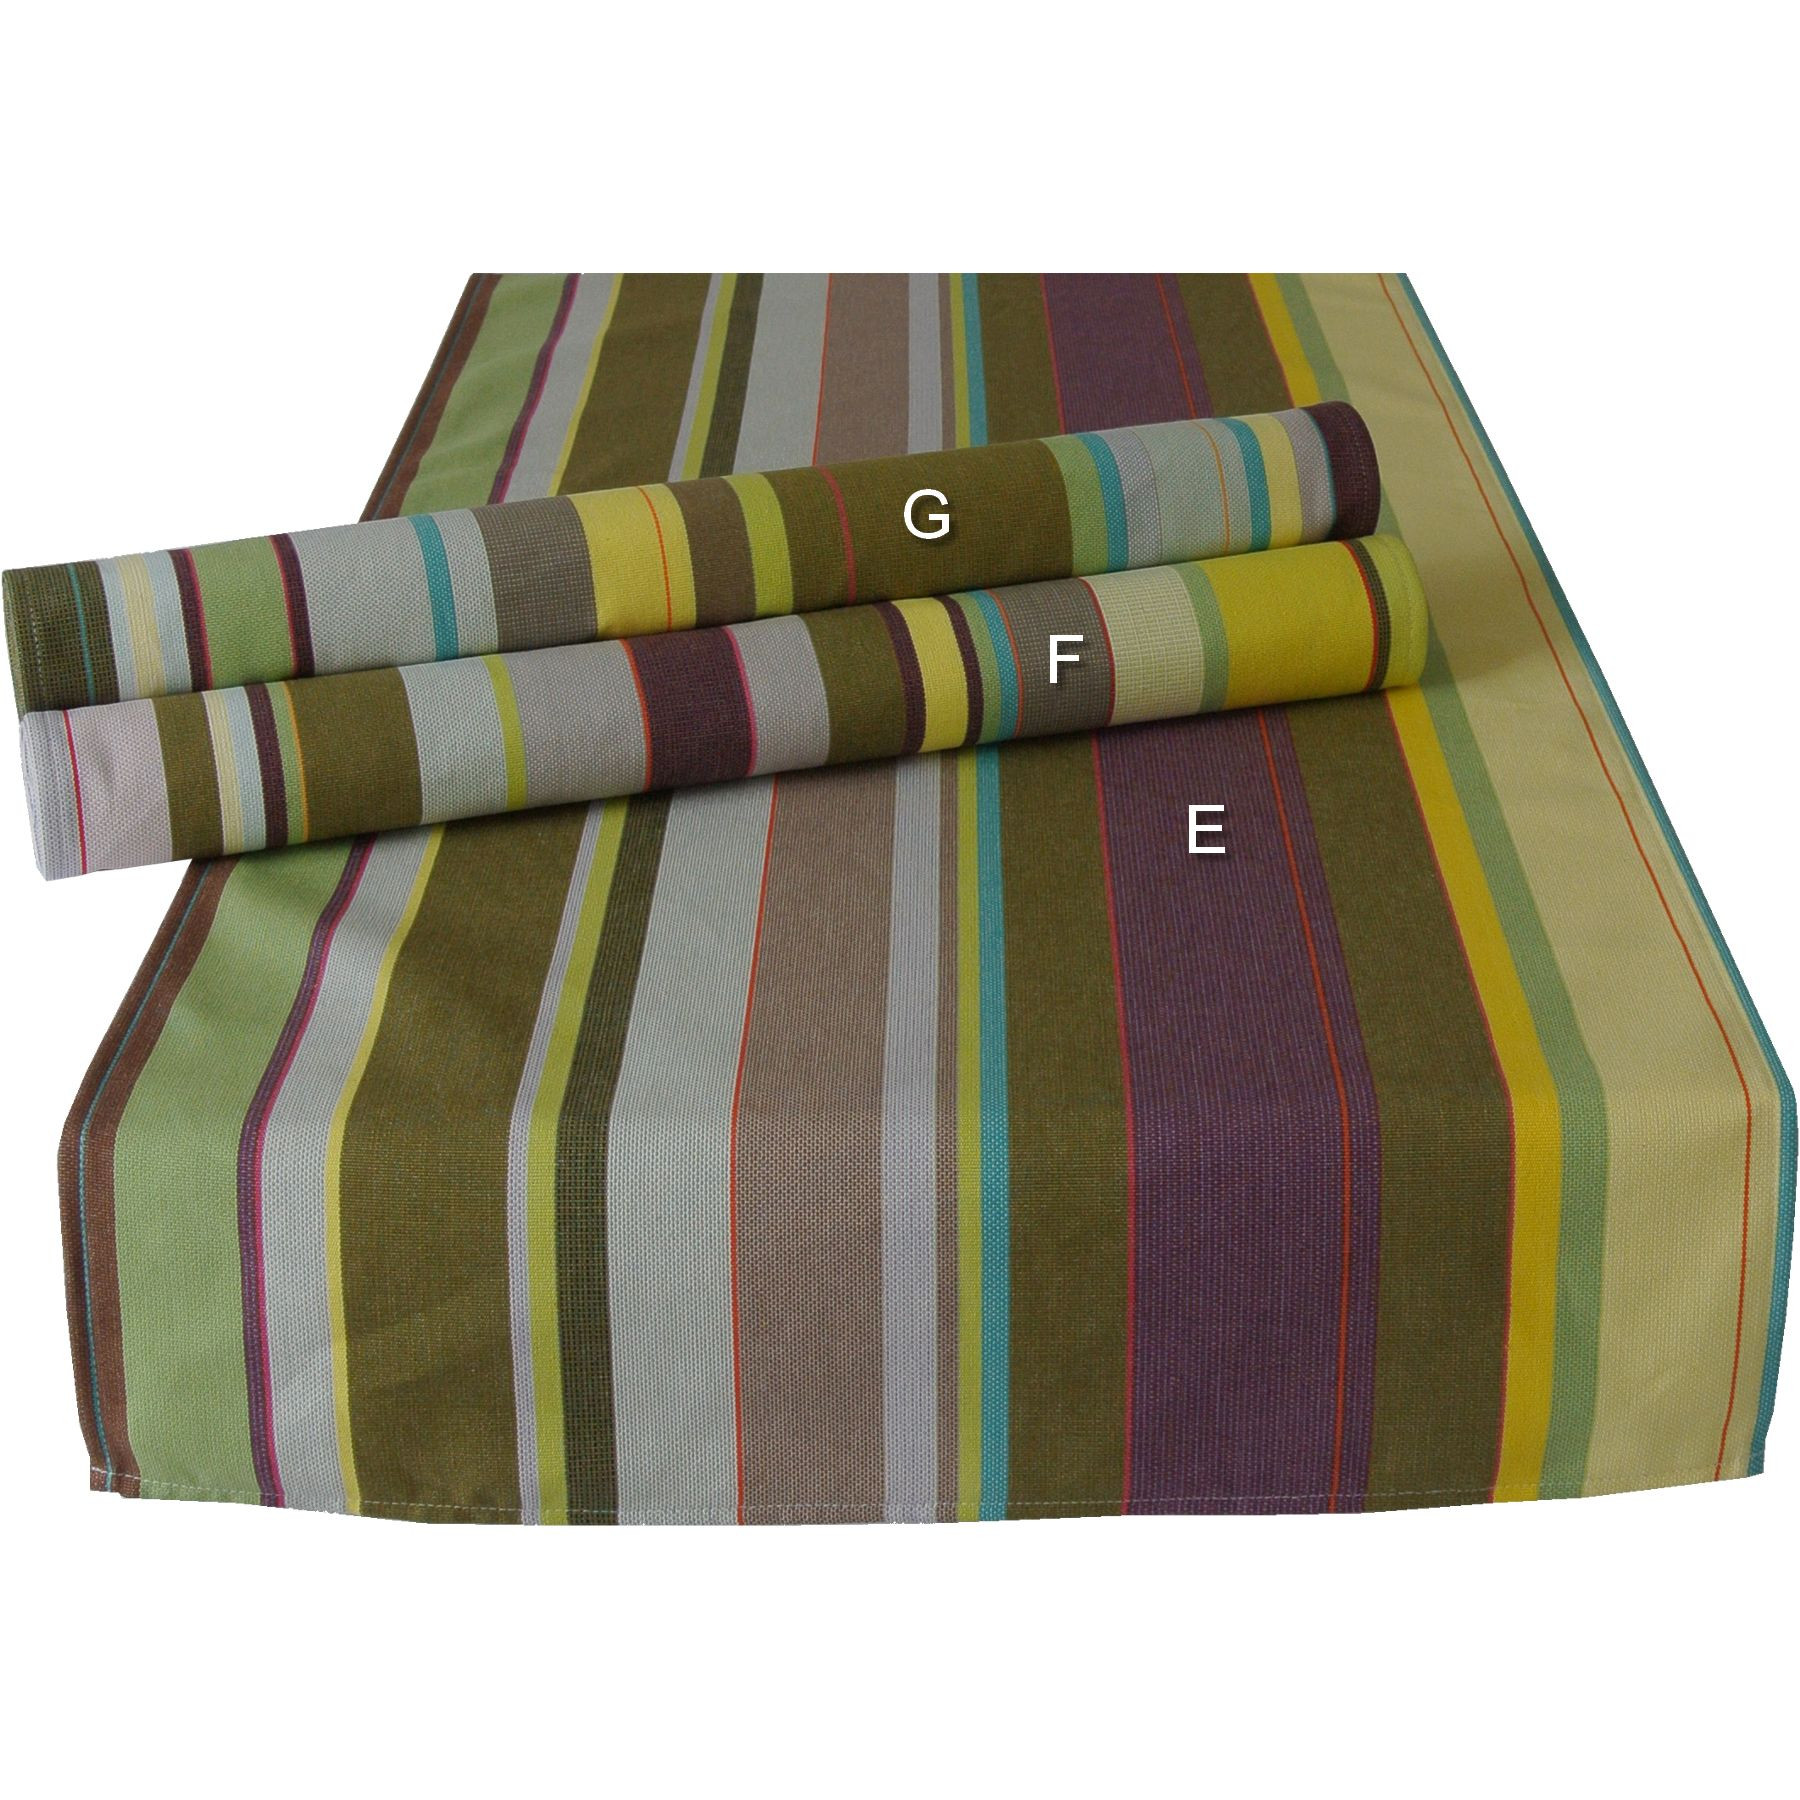 Table Runner Saillagouse - Table Linen Items Online